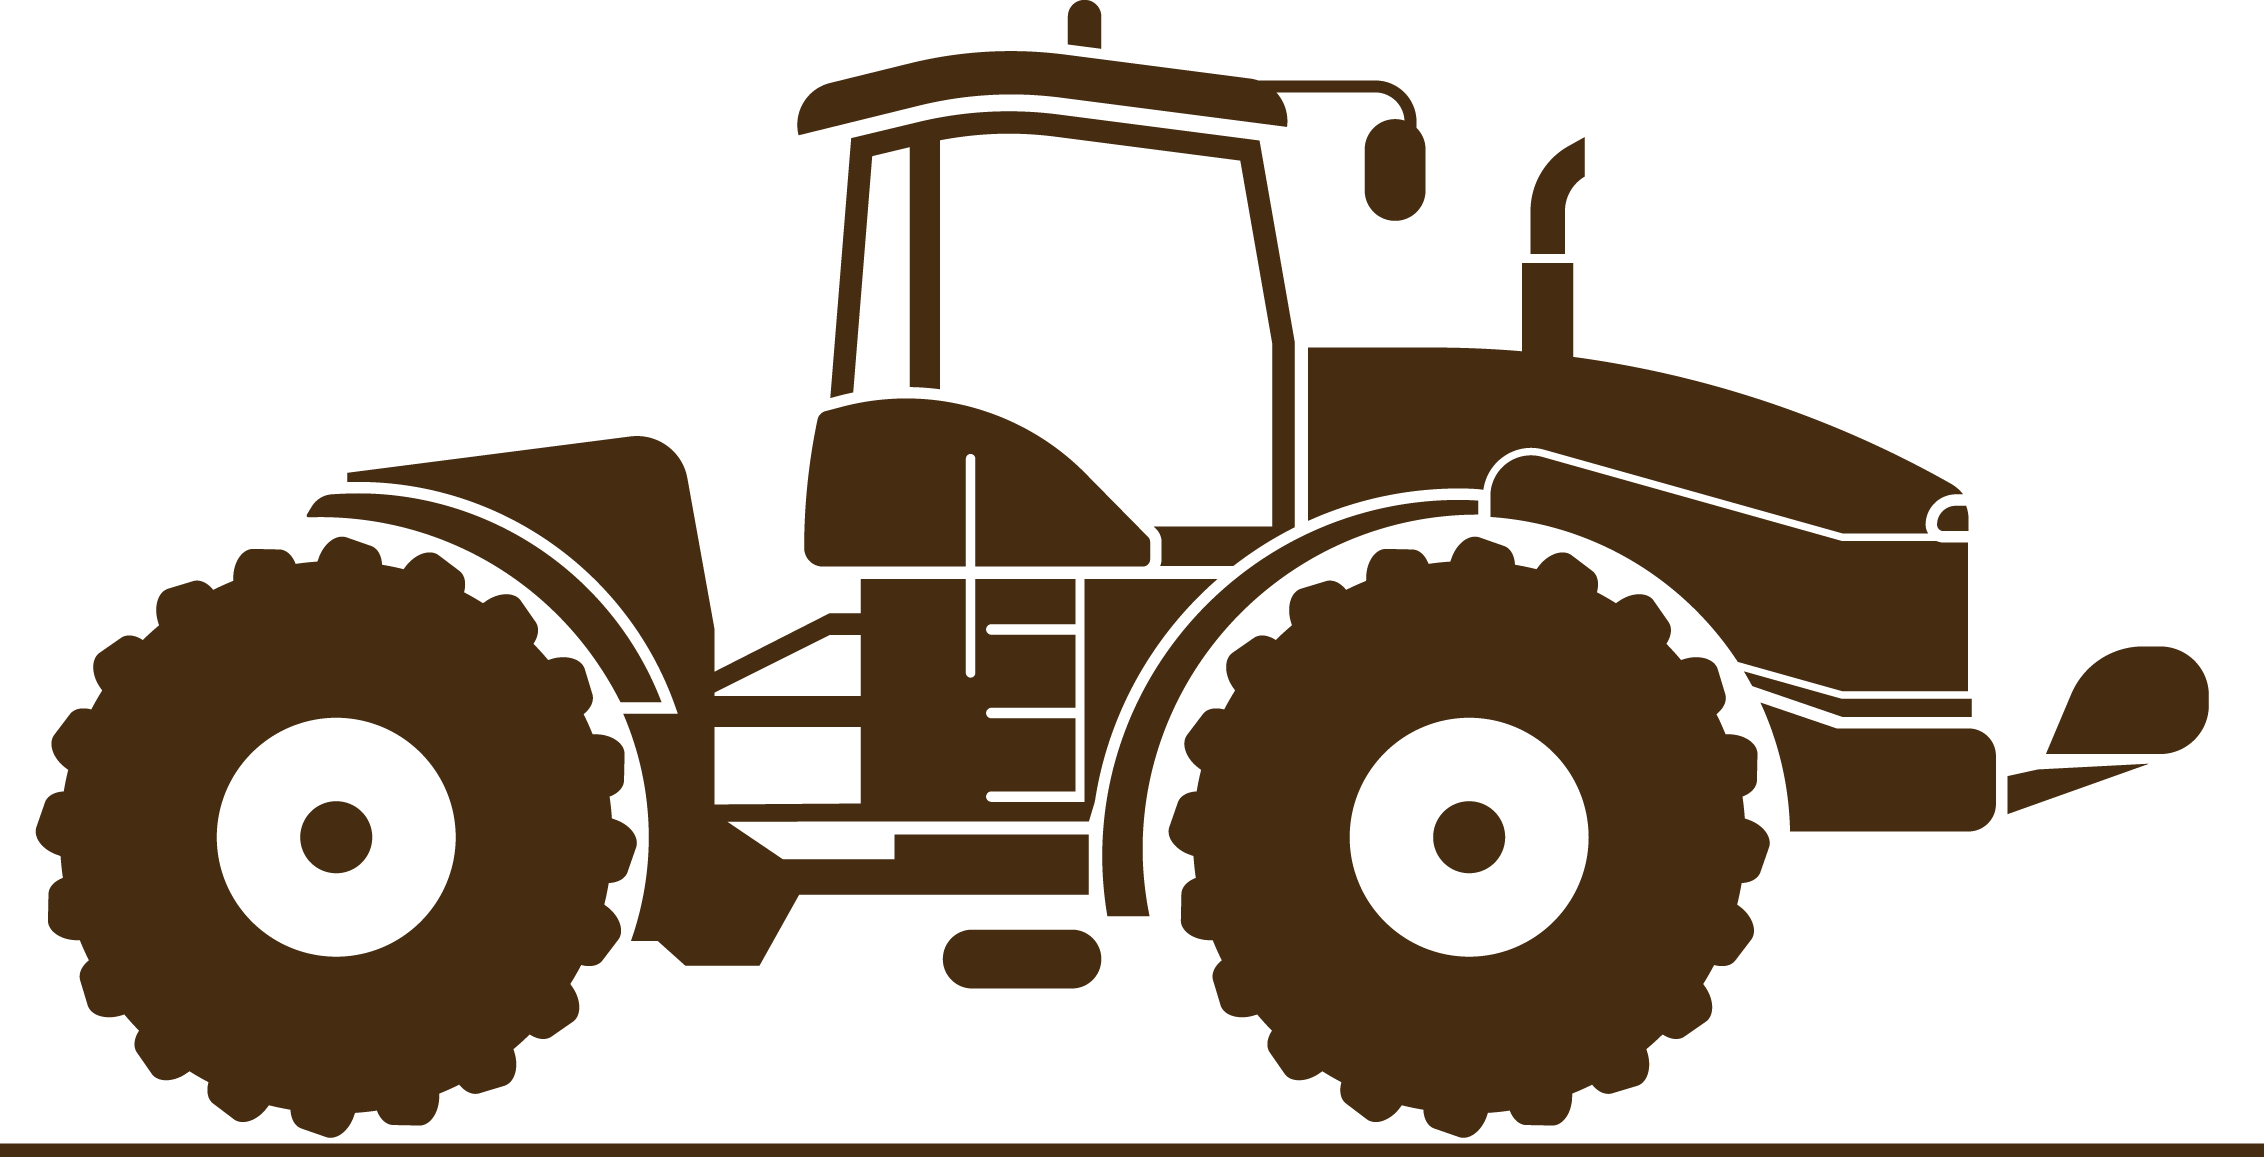 Brown tractor. Agriculture agricultural machinery farmer